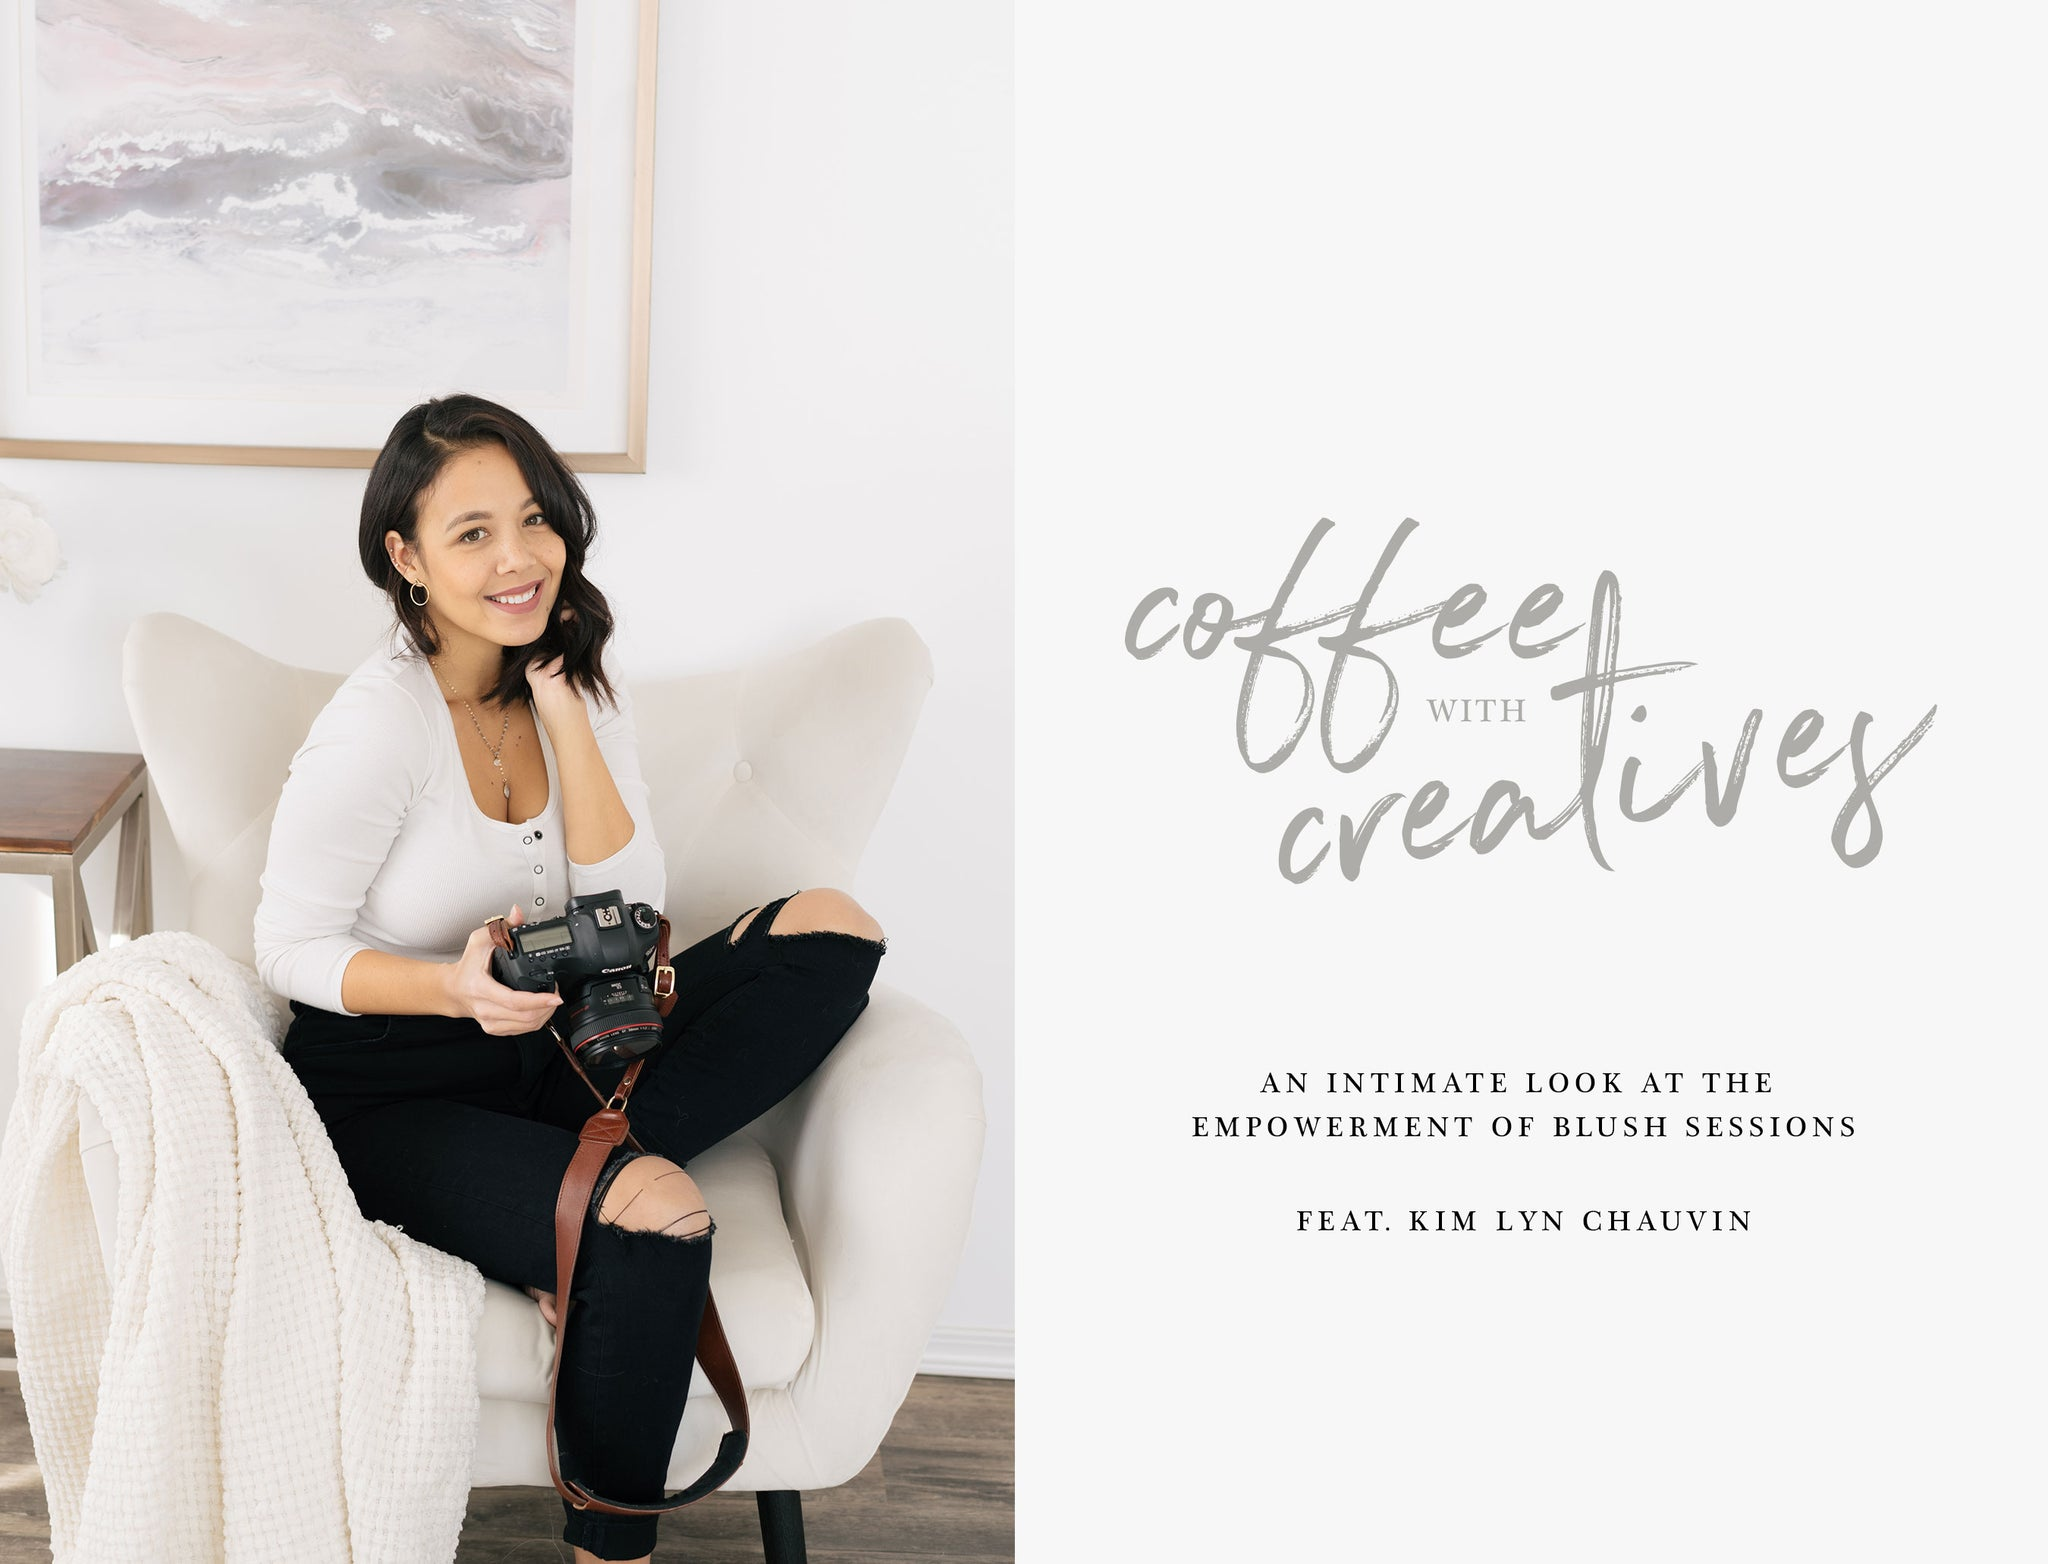 Fotostrap Blog: How to unleash your inner goddess with blush session expert with Kim Lyn Chauvin